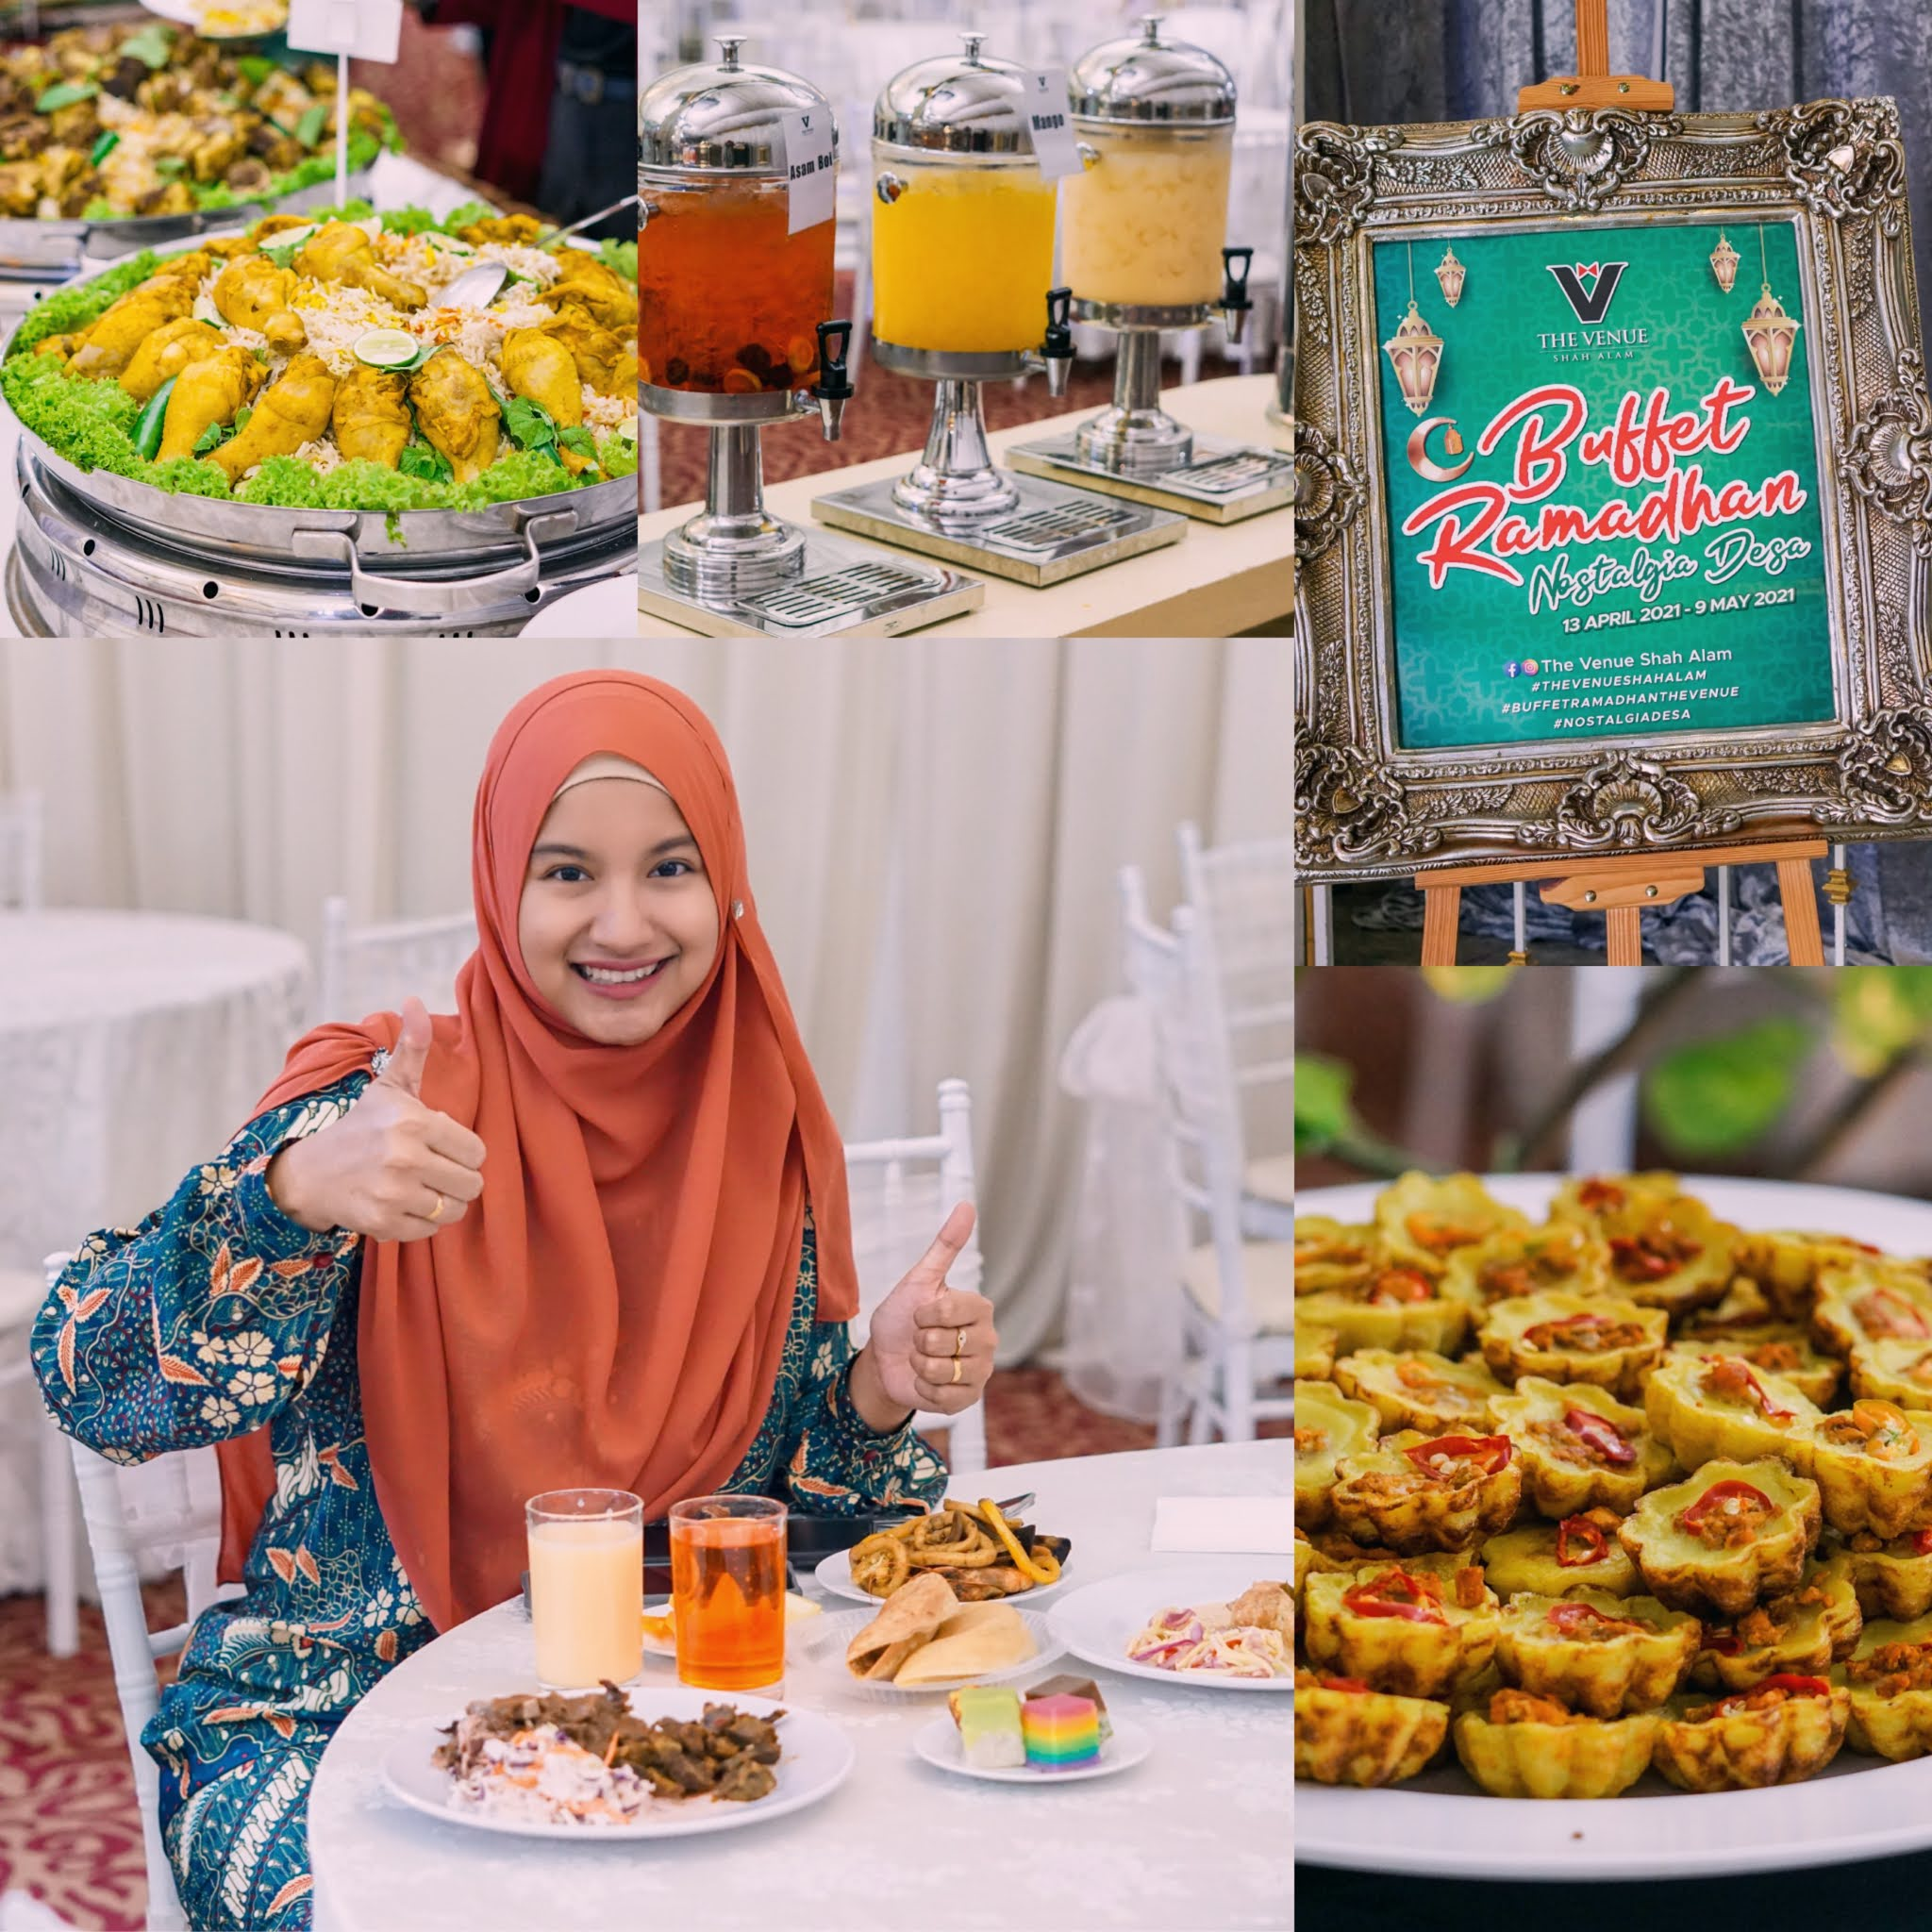 THE VENUE BUFFET RAMDHAN - Hak Milik Ina Ainaa